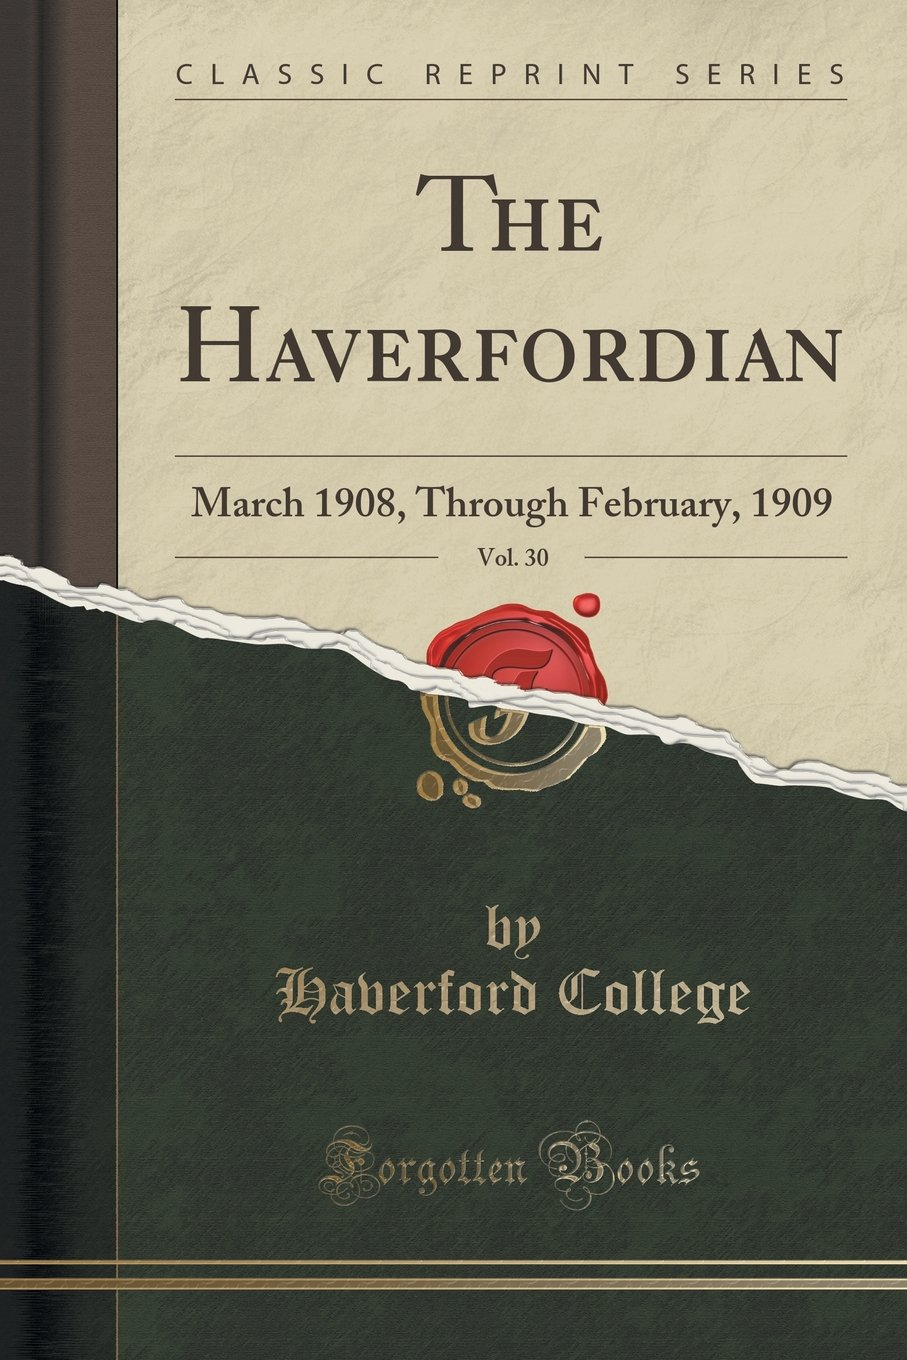 The Haverfordian, Vol. 30: March 1908, Through February, 1909 (Classic Reprint) ebook